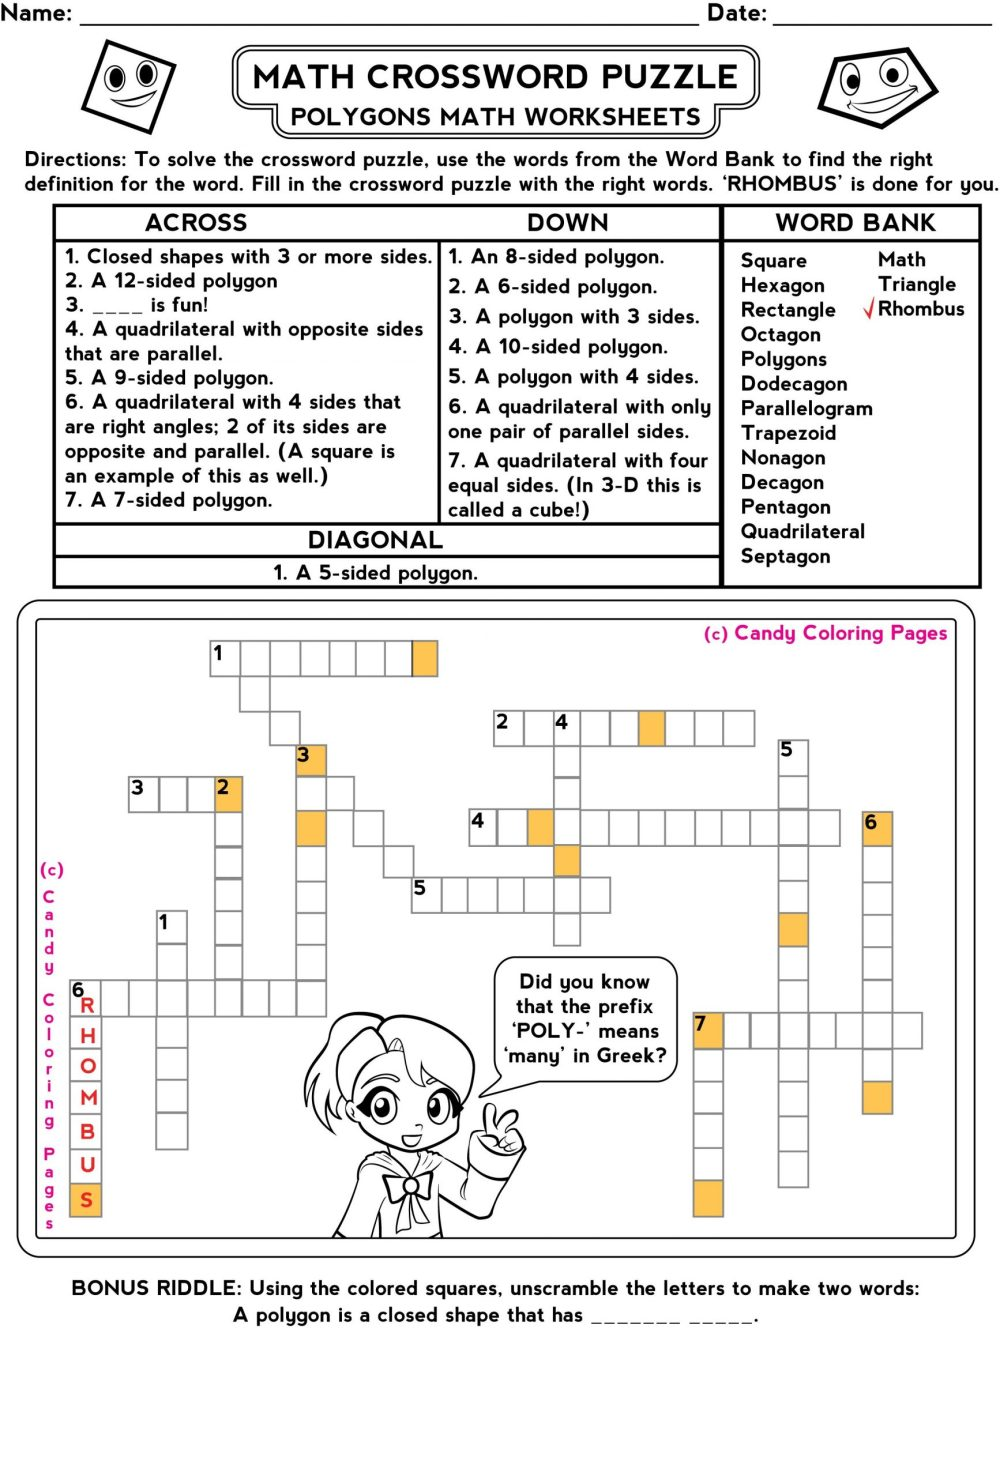 medium resolution of Time Math Riddle Worksheet   Printable Worksheets and Activities for  Teachers